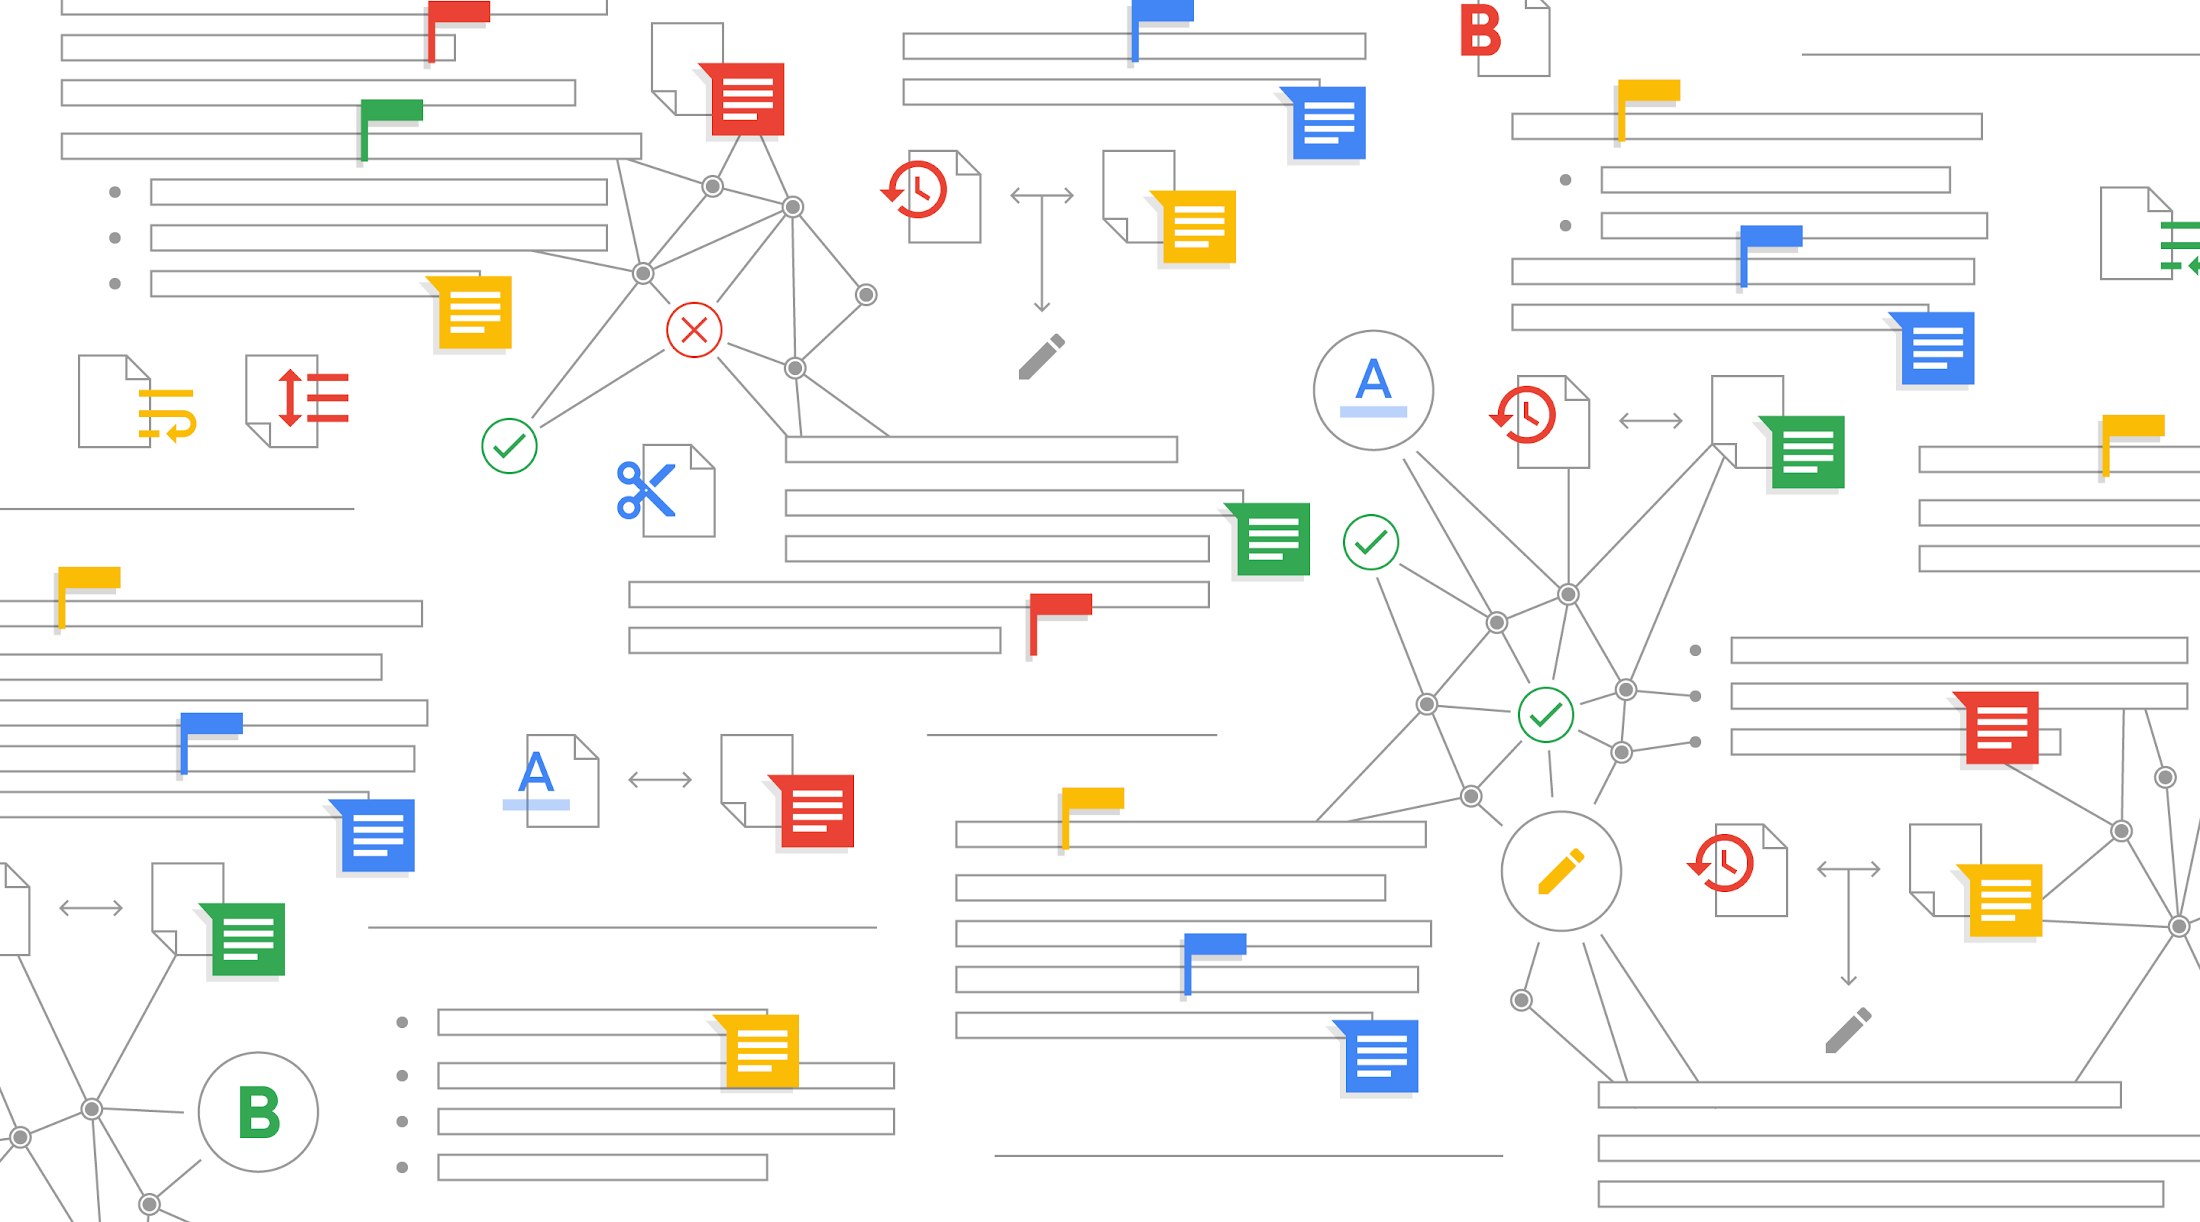 Google Docs now offers grammar suggestions to help you write better